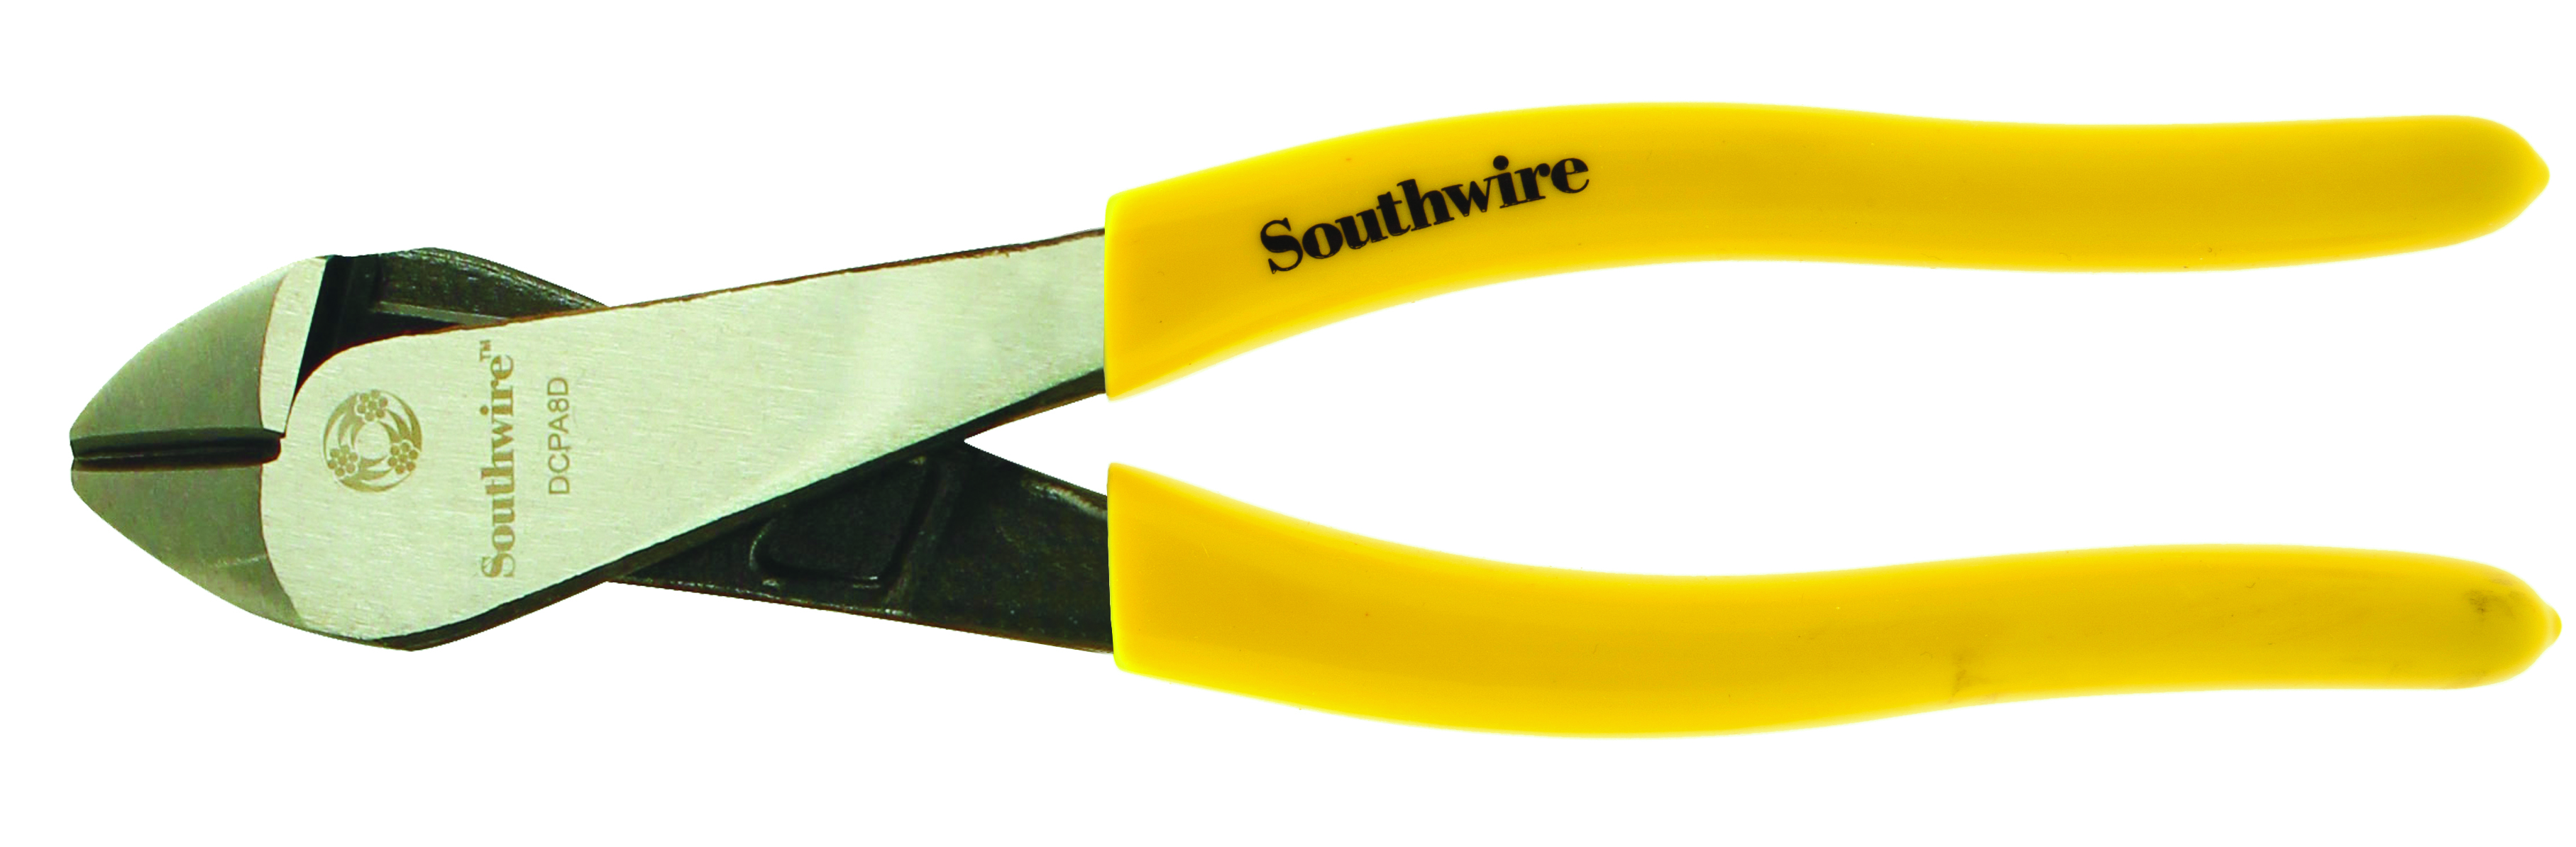 SOUTHWIRE HAND TOOLS 58289501